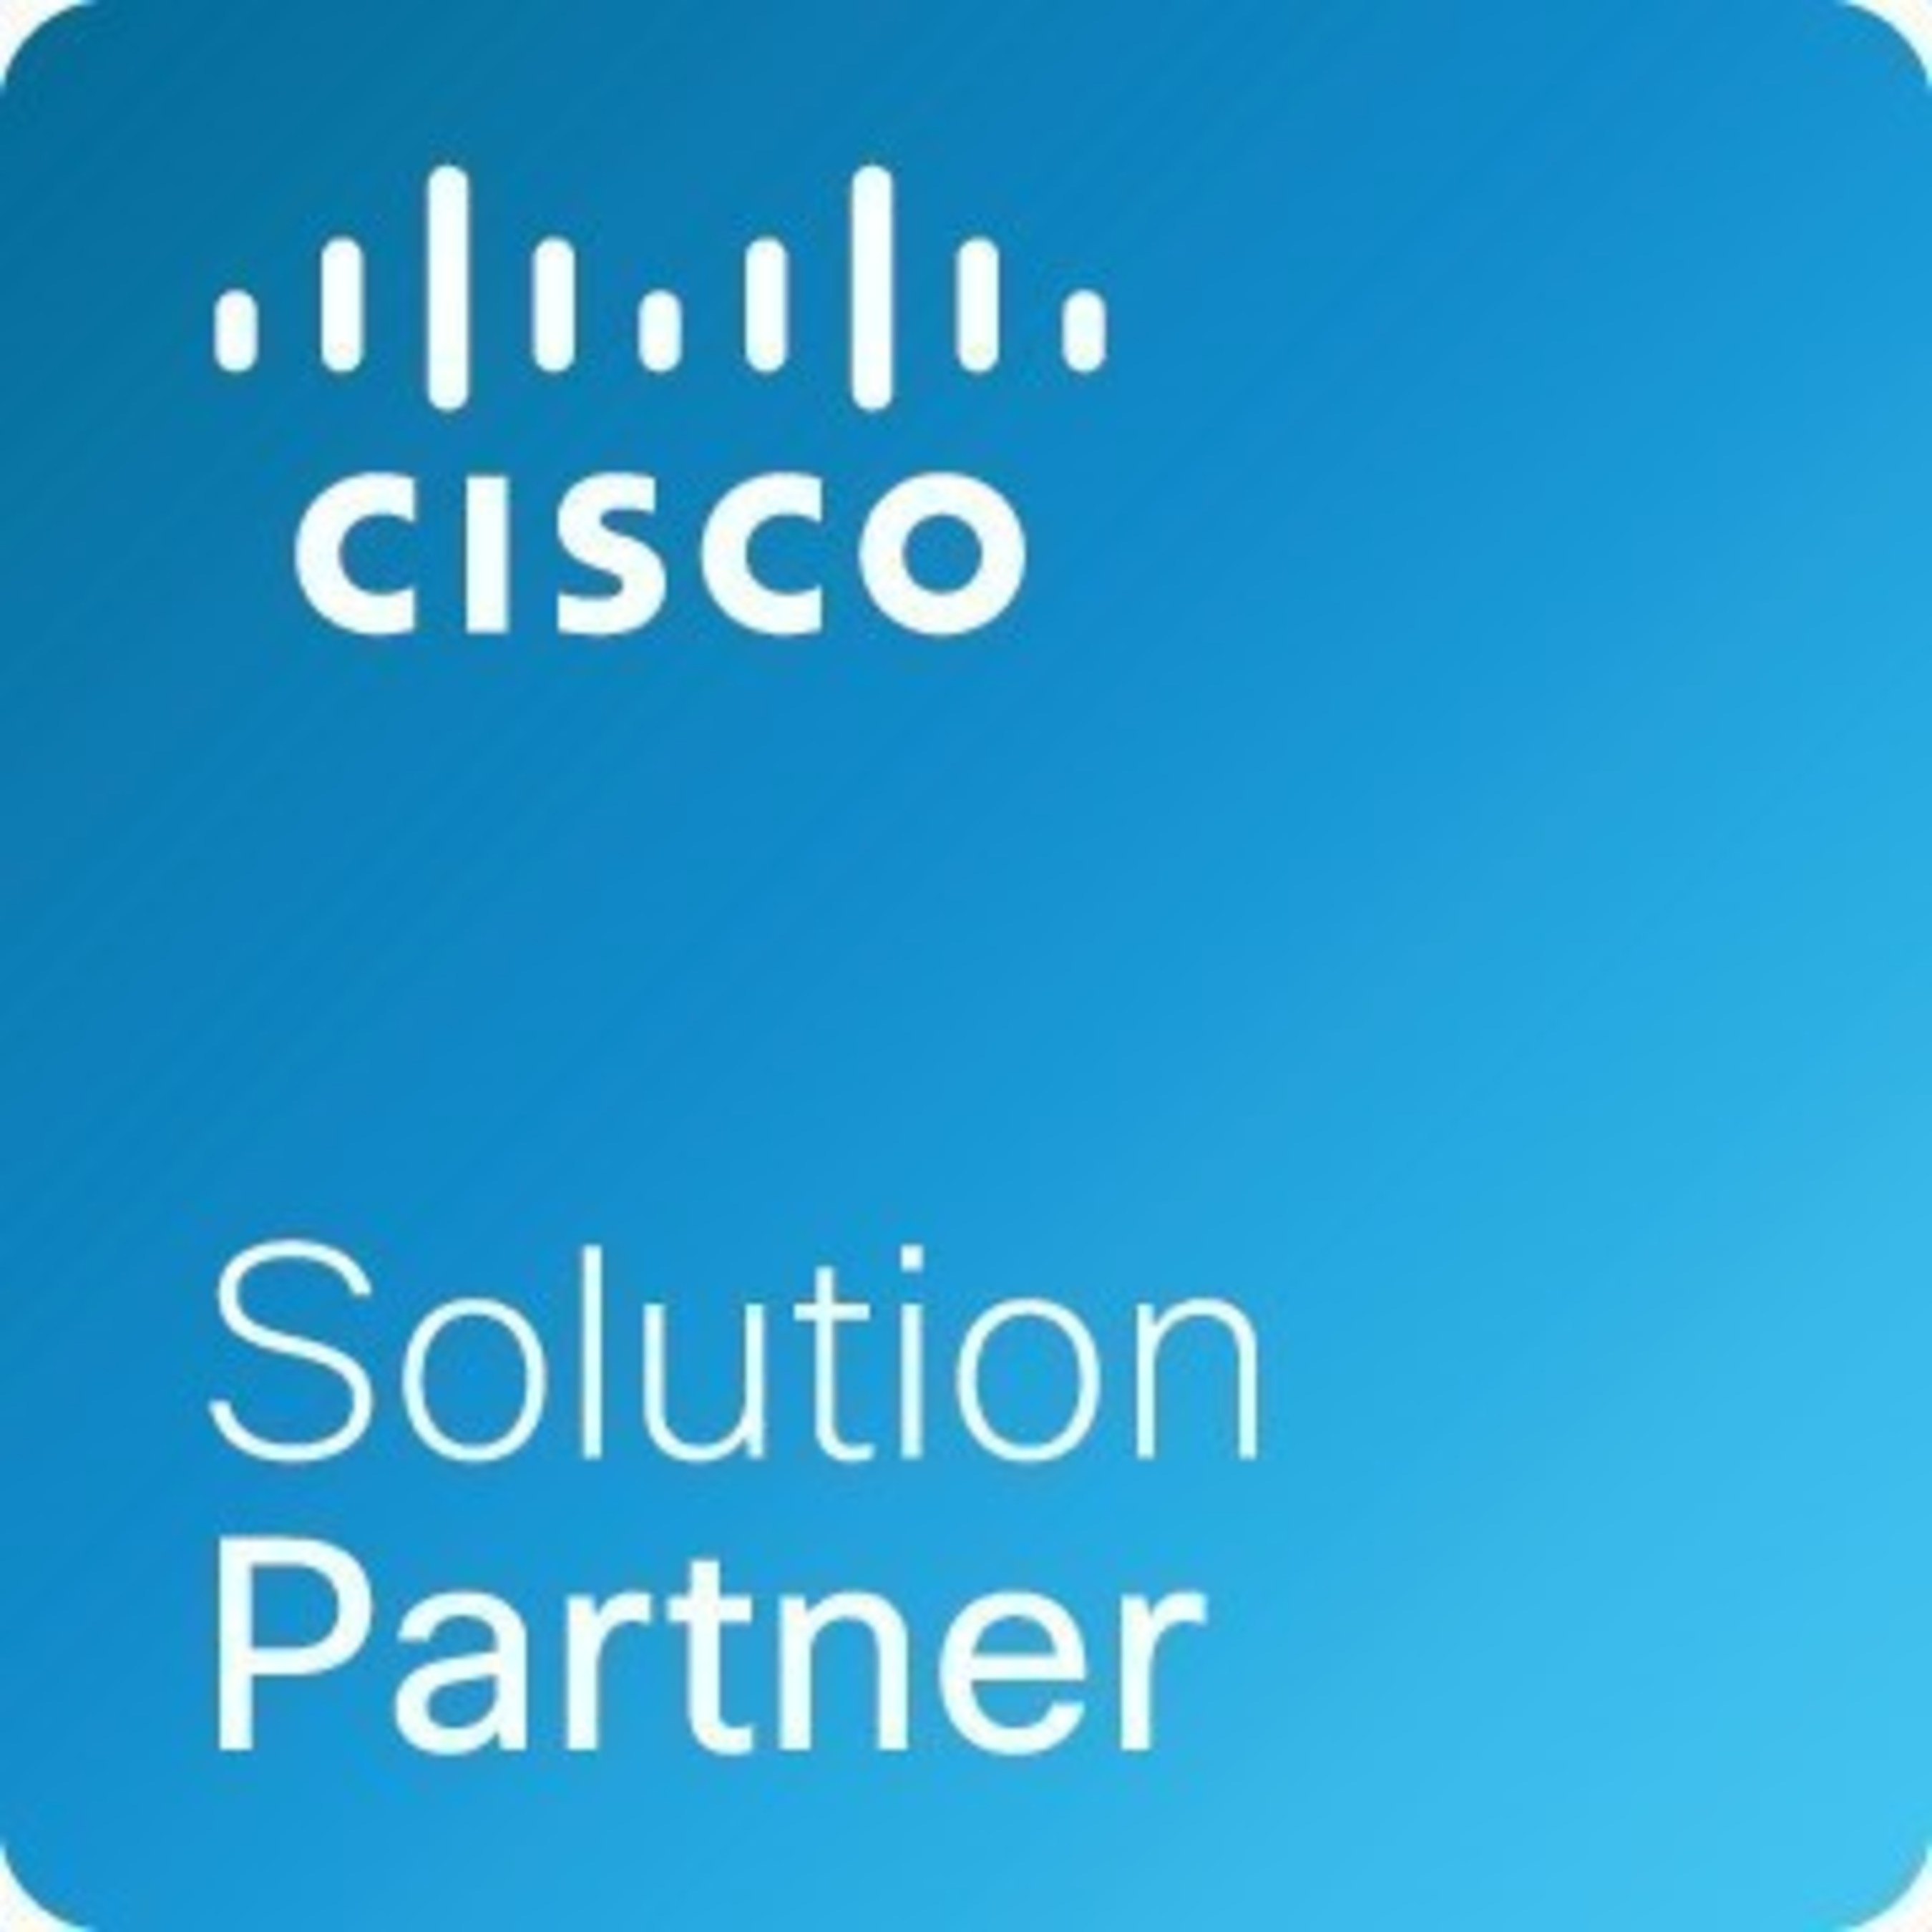 Garland Technology is a Sponsor for the Cisco Live Technology Conference